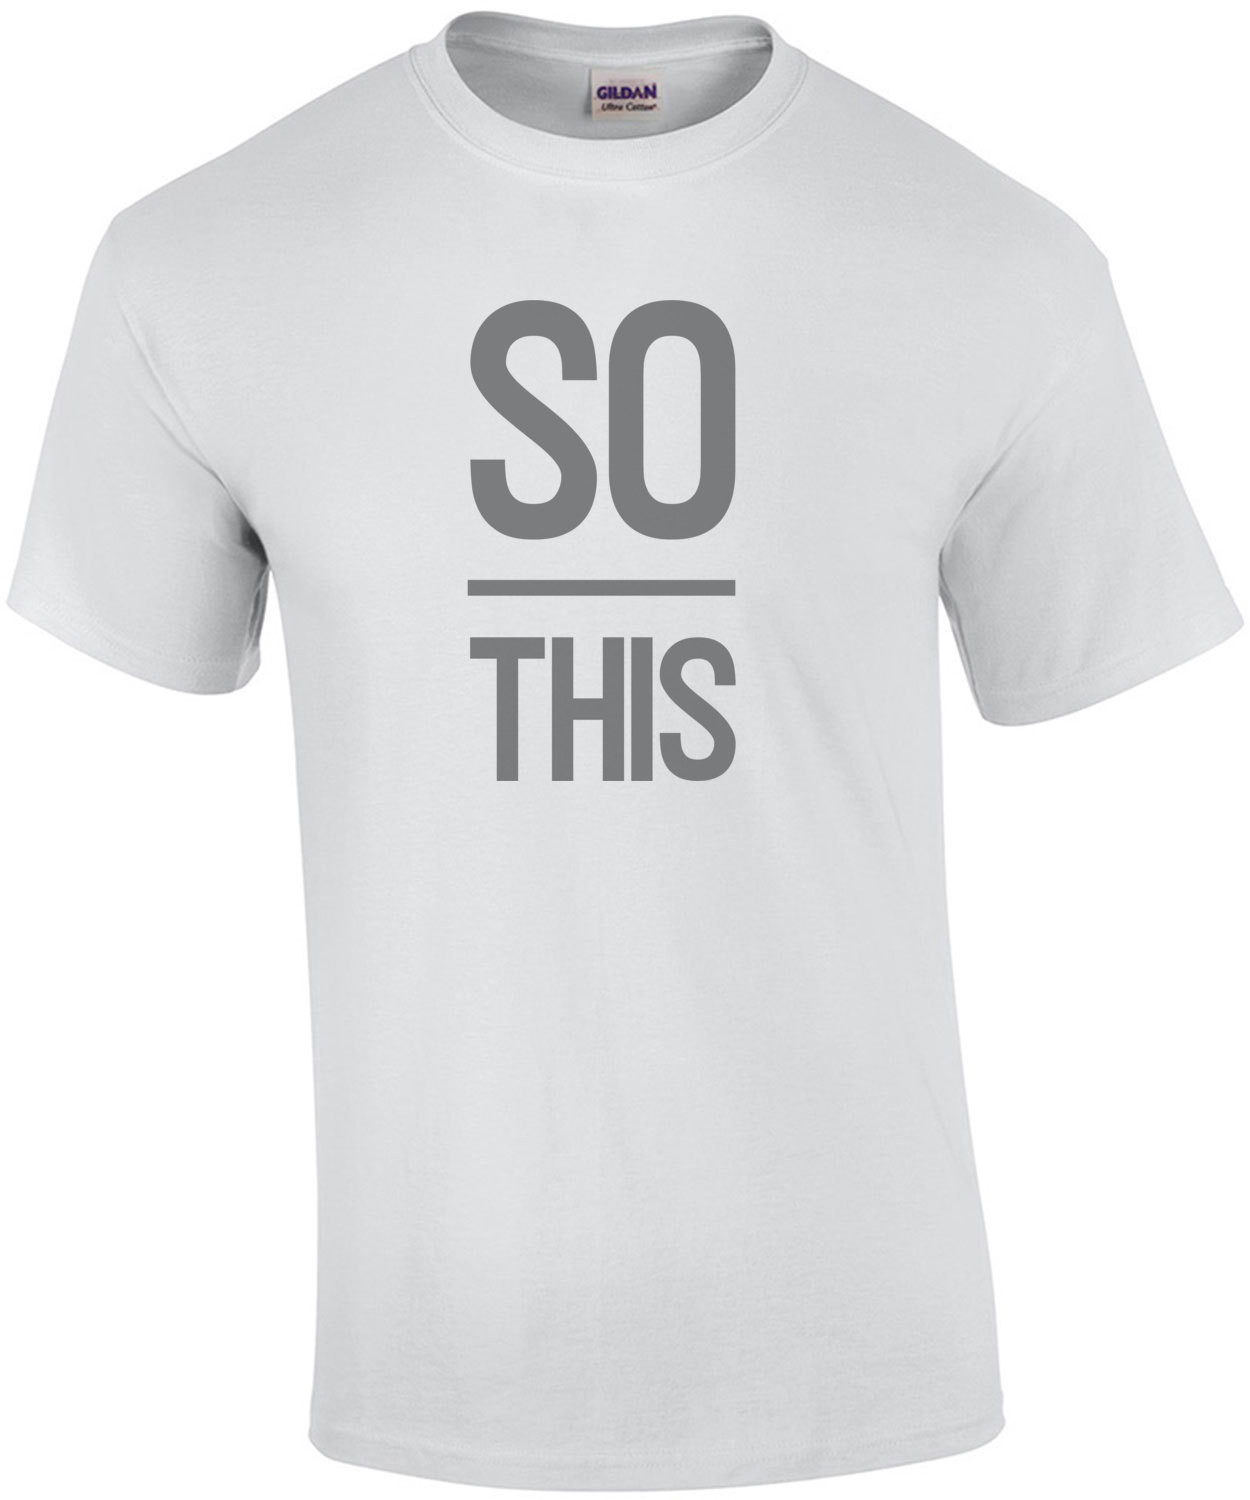 So OVER this - funny t-shirt